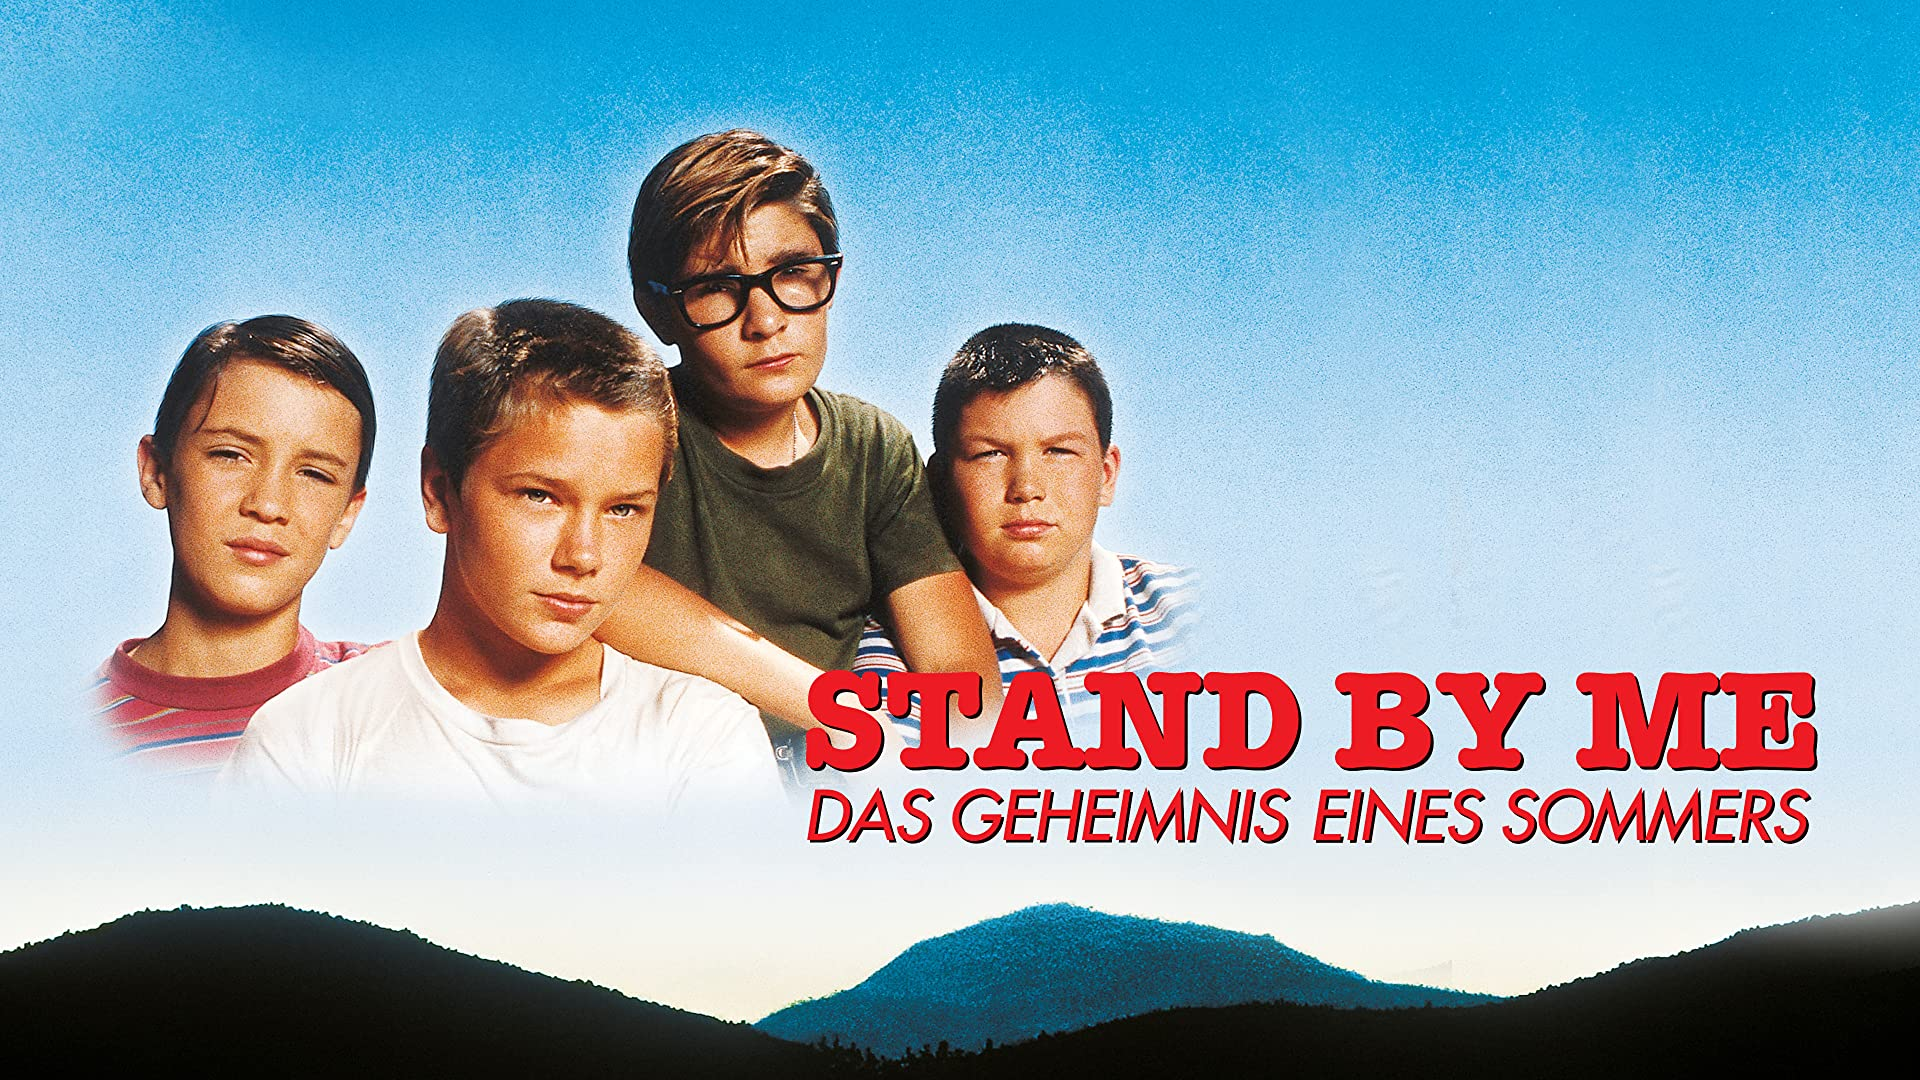 Stand by me - Geheimnis eines Sommers